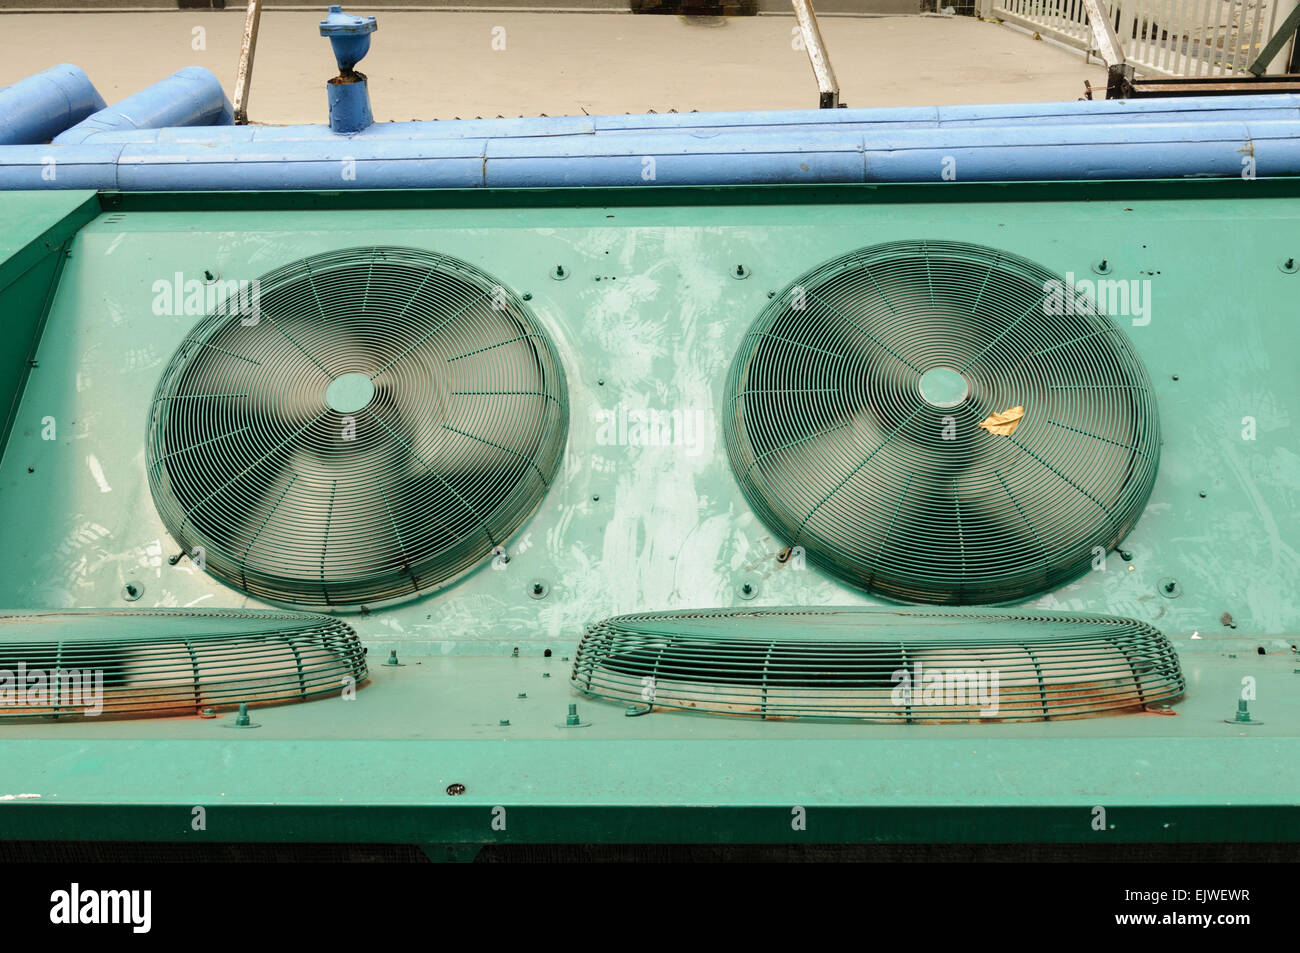 Air conditioning units, Singapore. - Stock Image